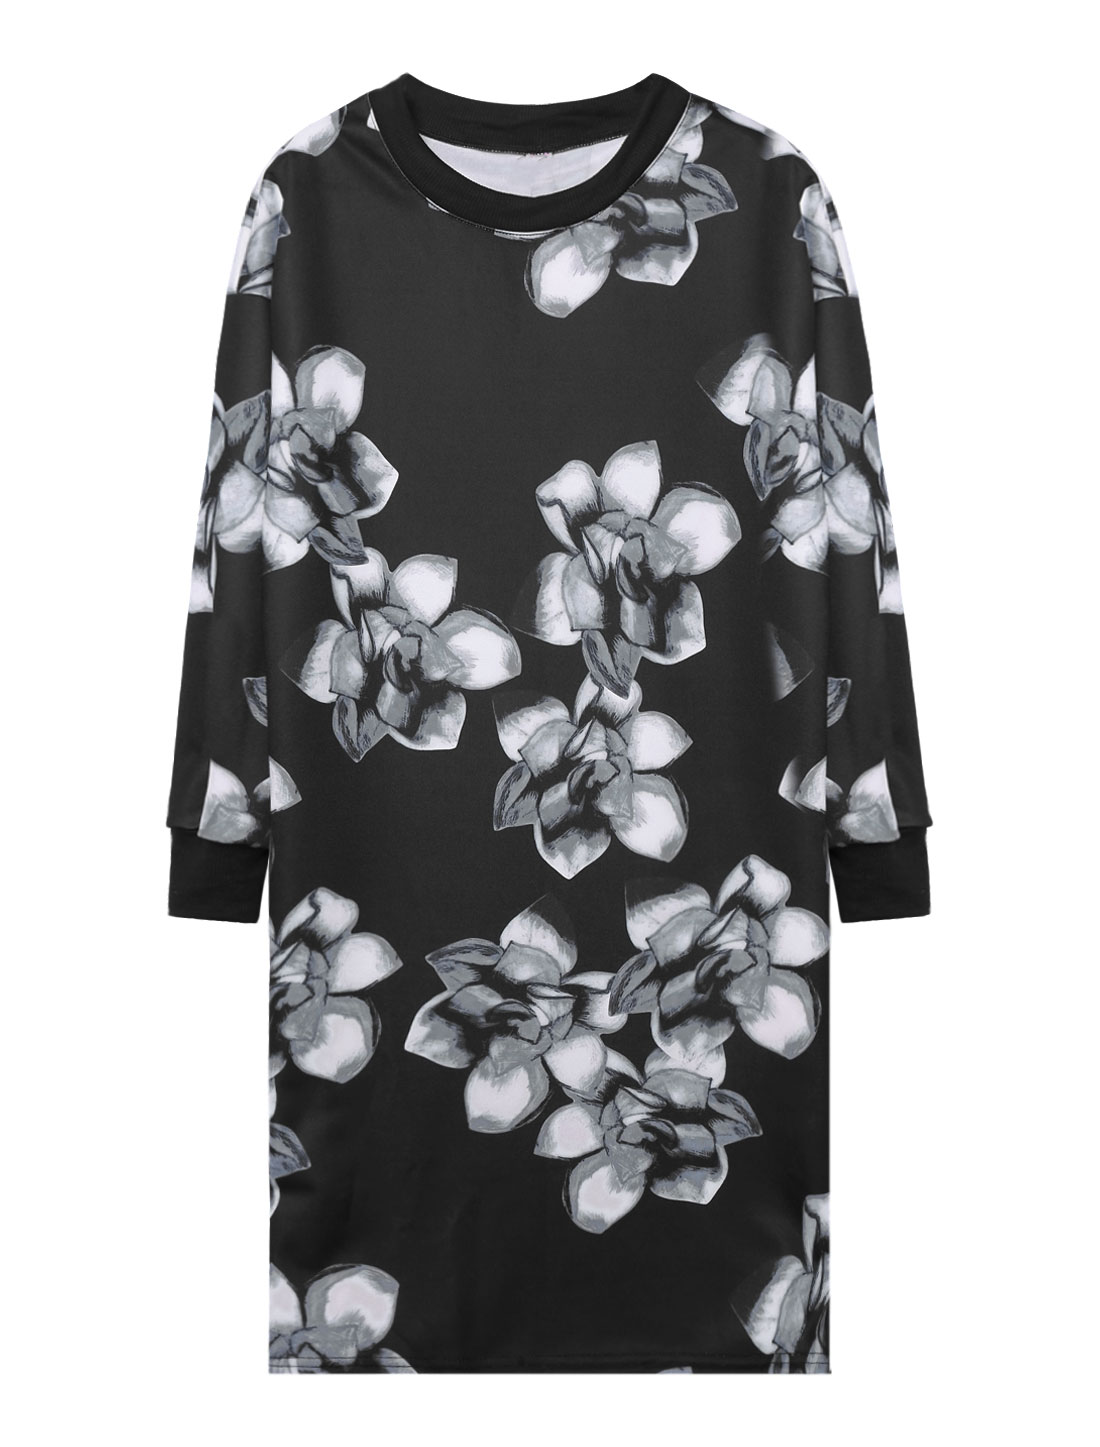 Women Crew Neck Long Sleeves Floral Prints Loose Sweatshirt Dress Black S